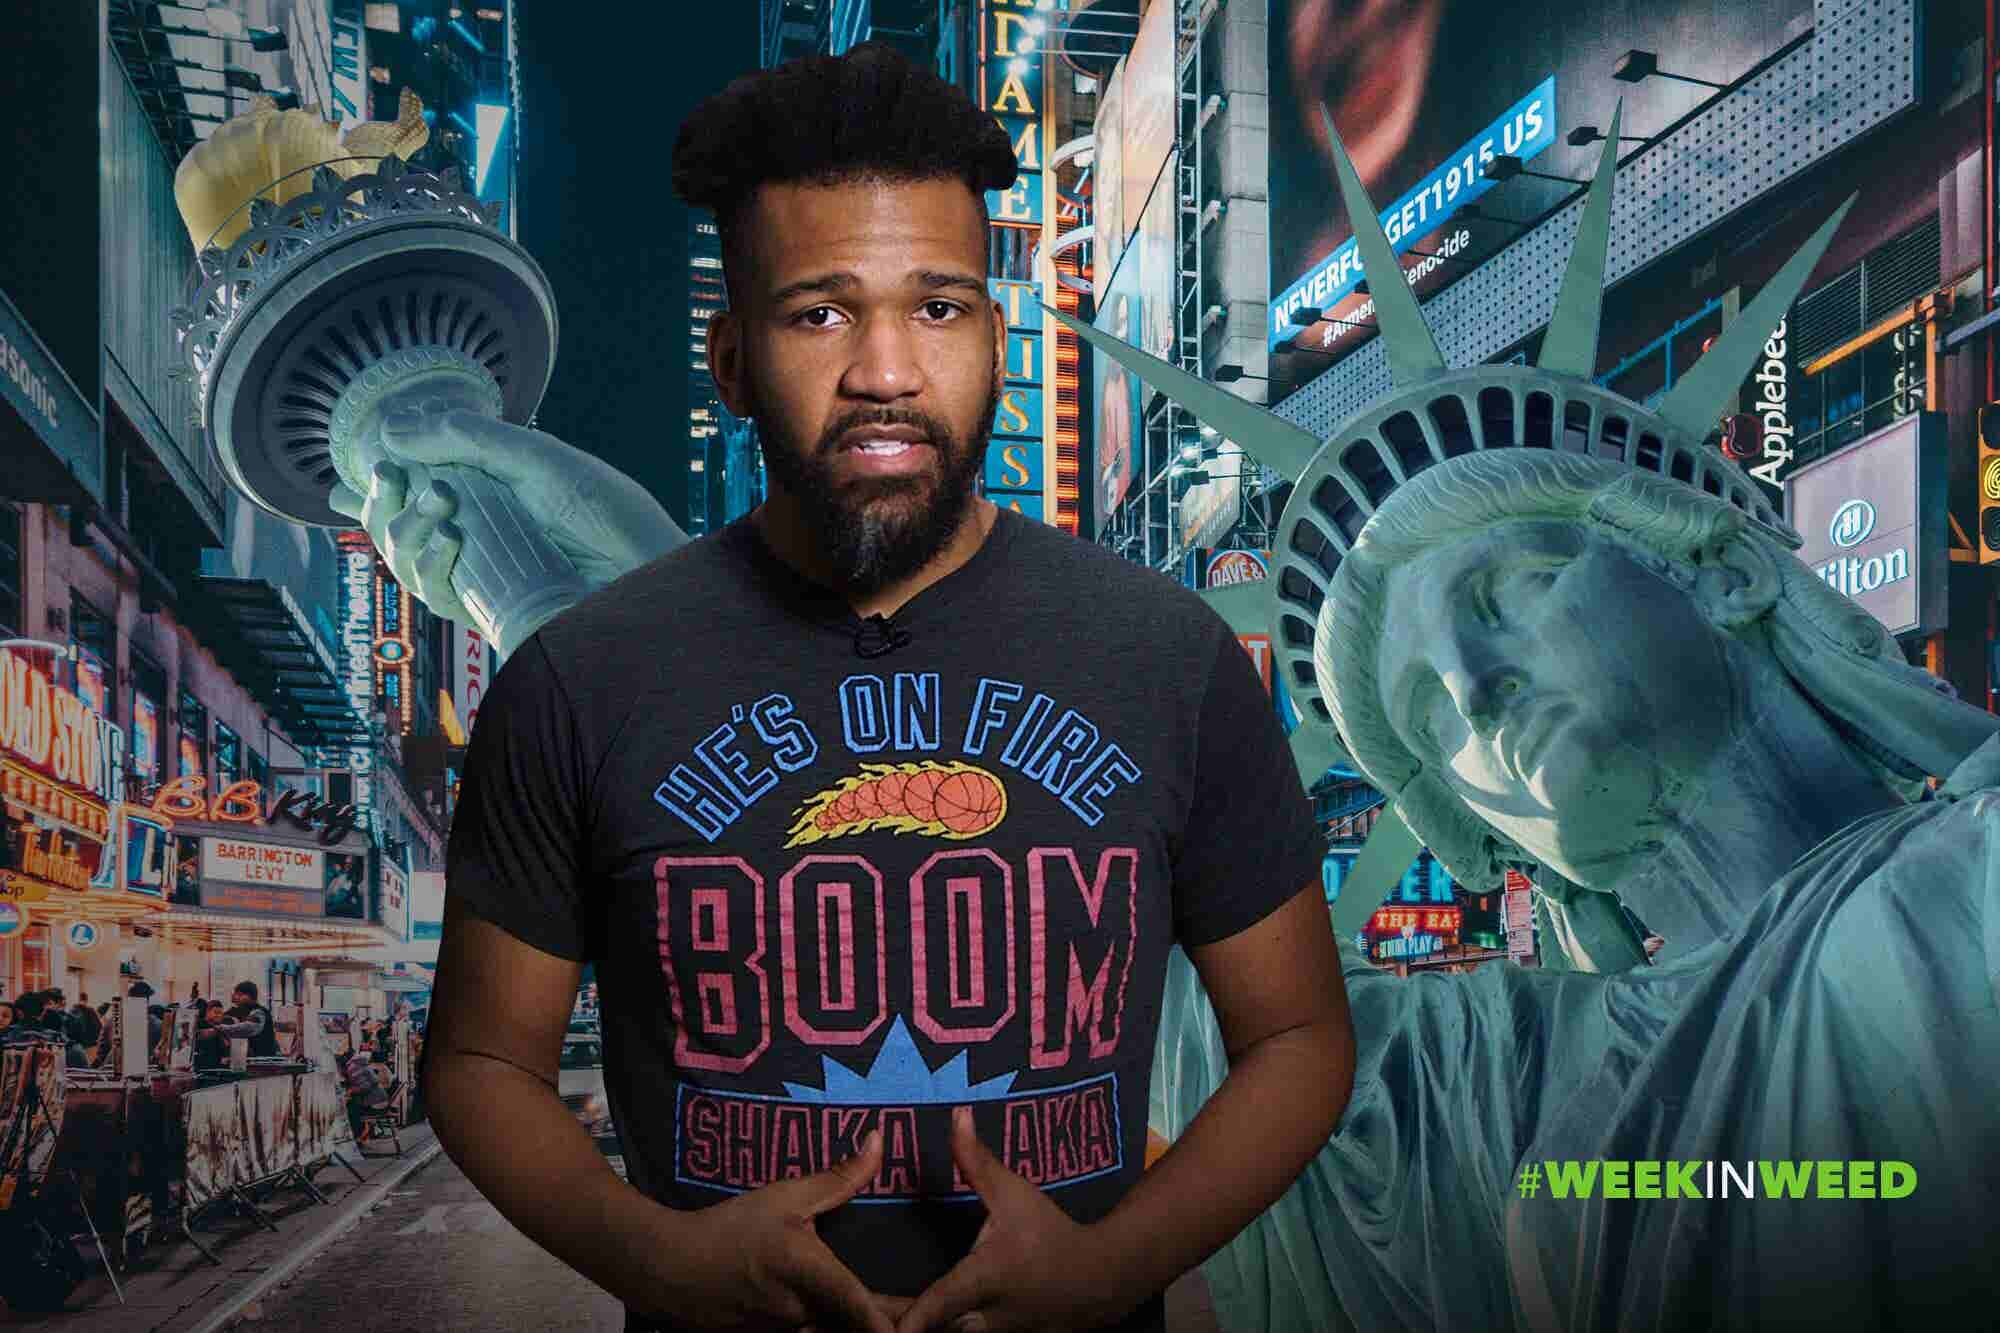 This Week in Weed: New York City Cracks Down!